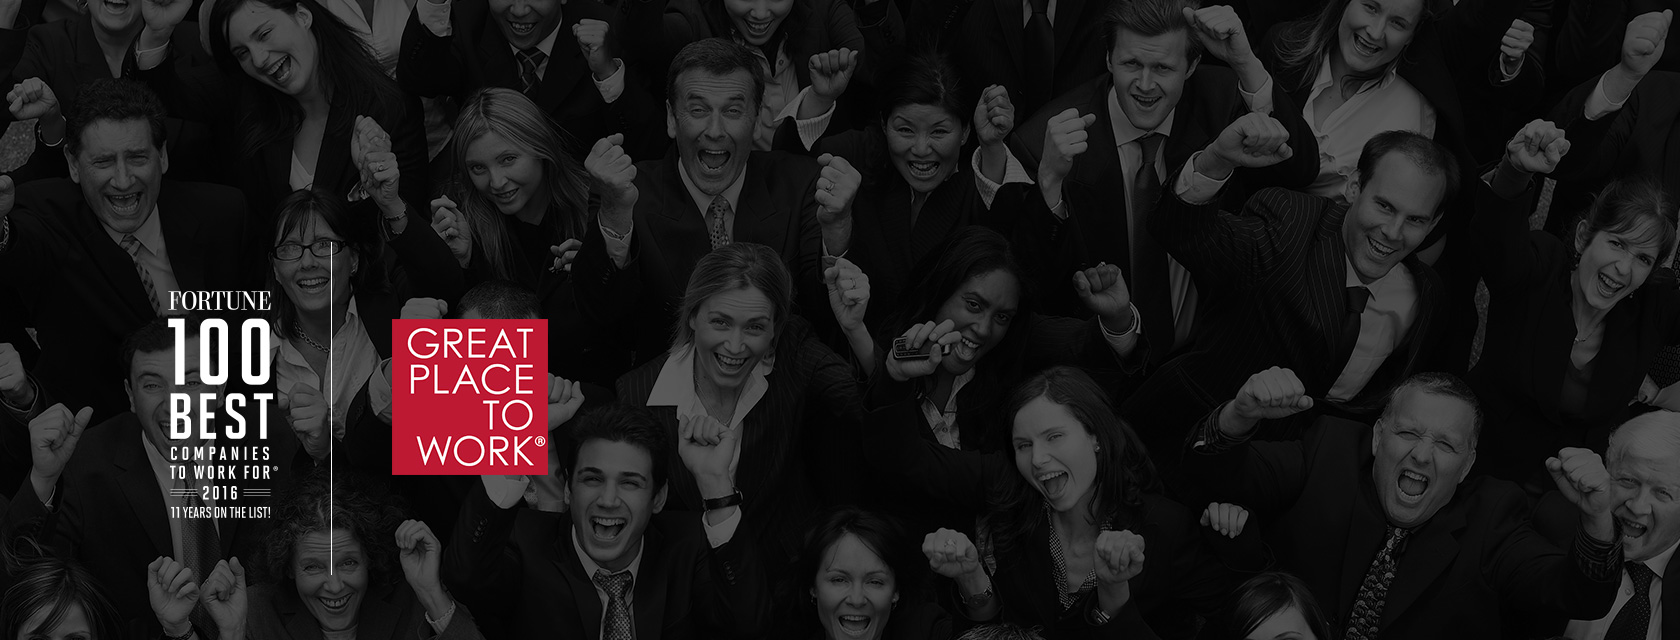 We're one of Fortune Magazine's 100 best places to work